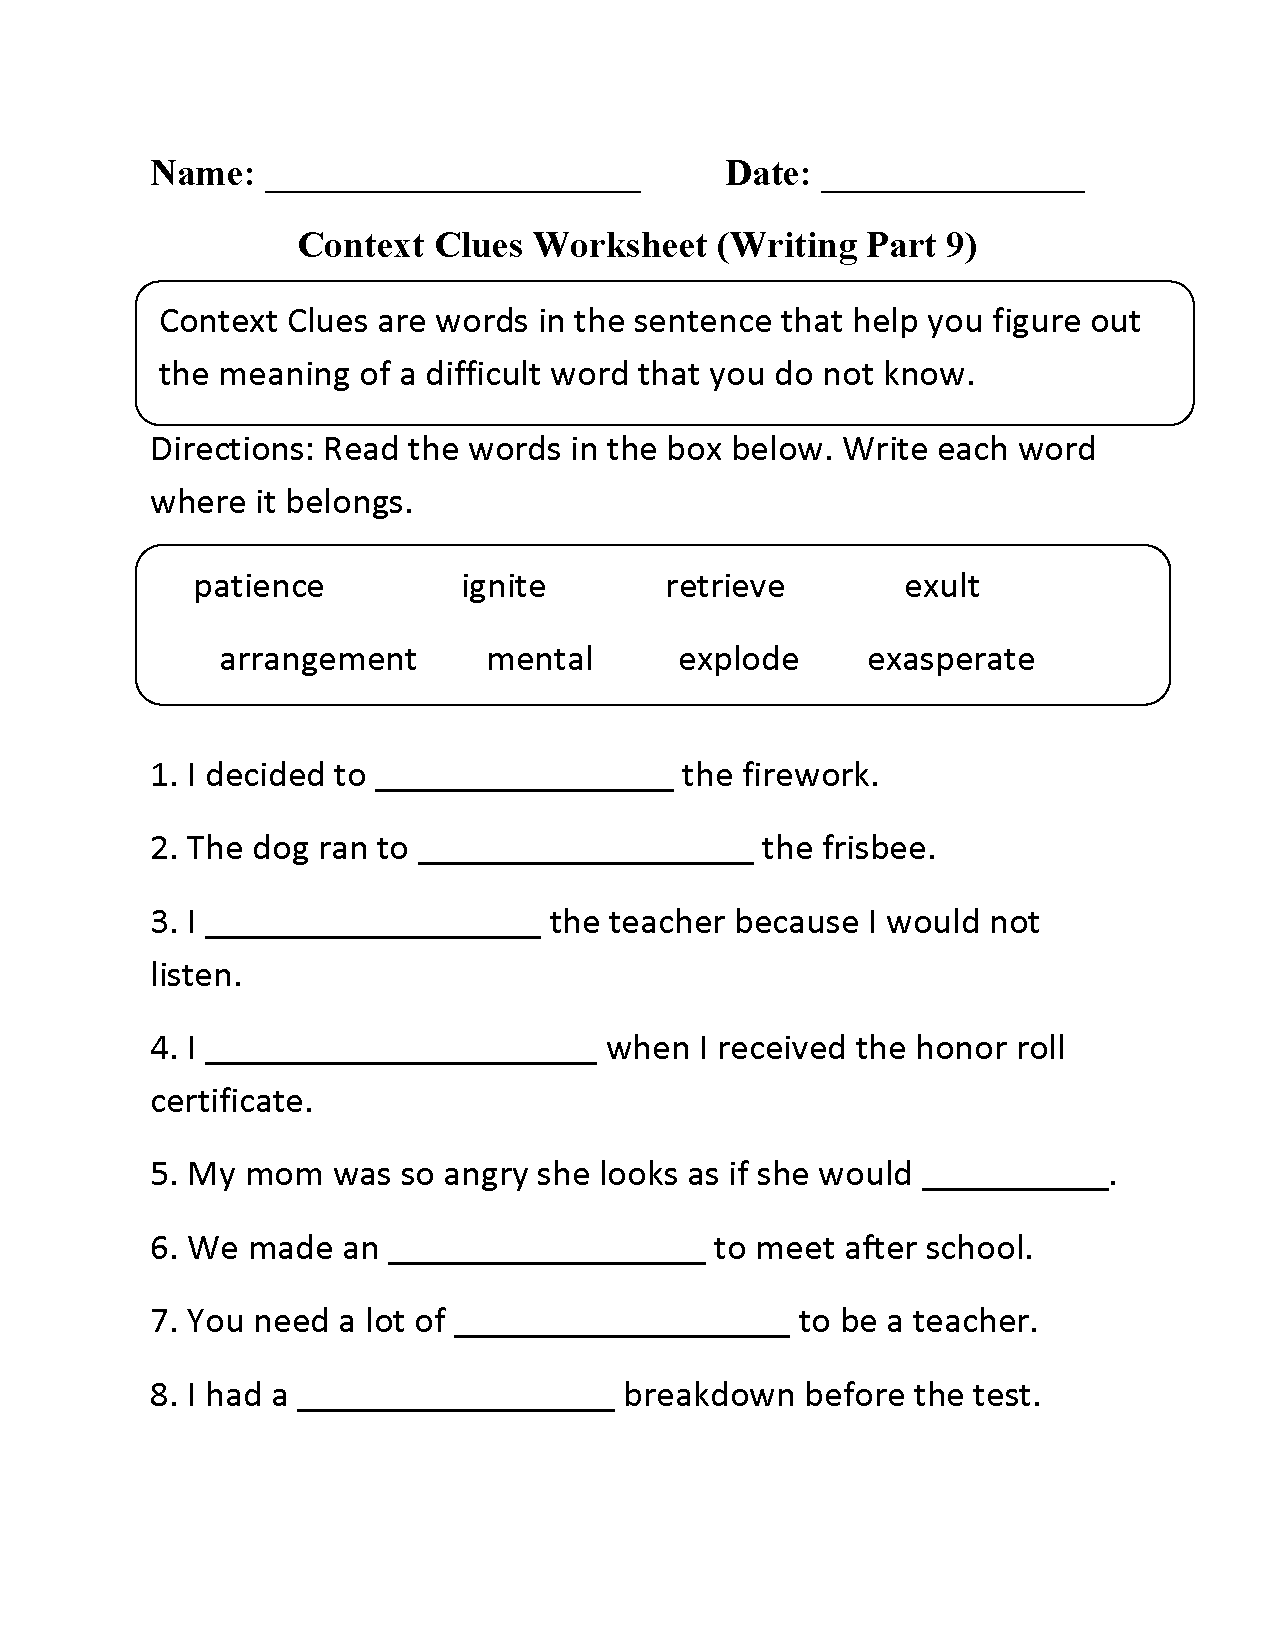 Free Worksheet Intermediate Directions Worksheet englishlinx com context clues worksheets worksheet writing part 9 intermediate